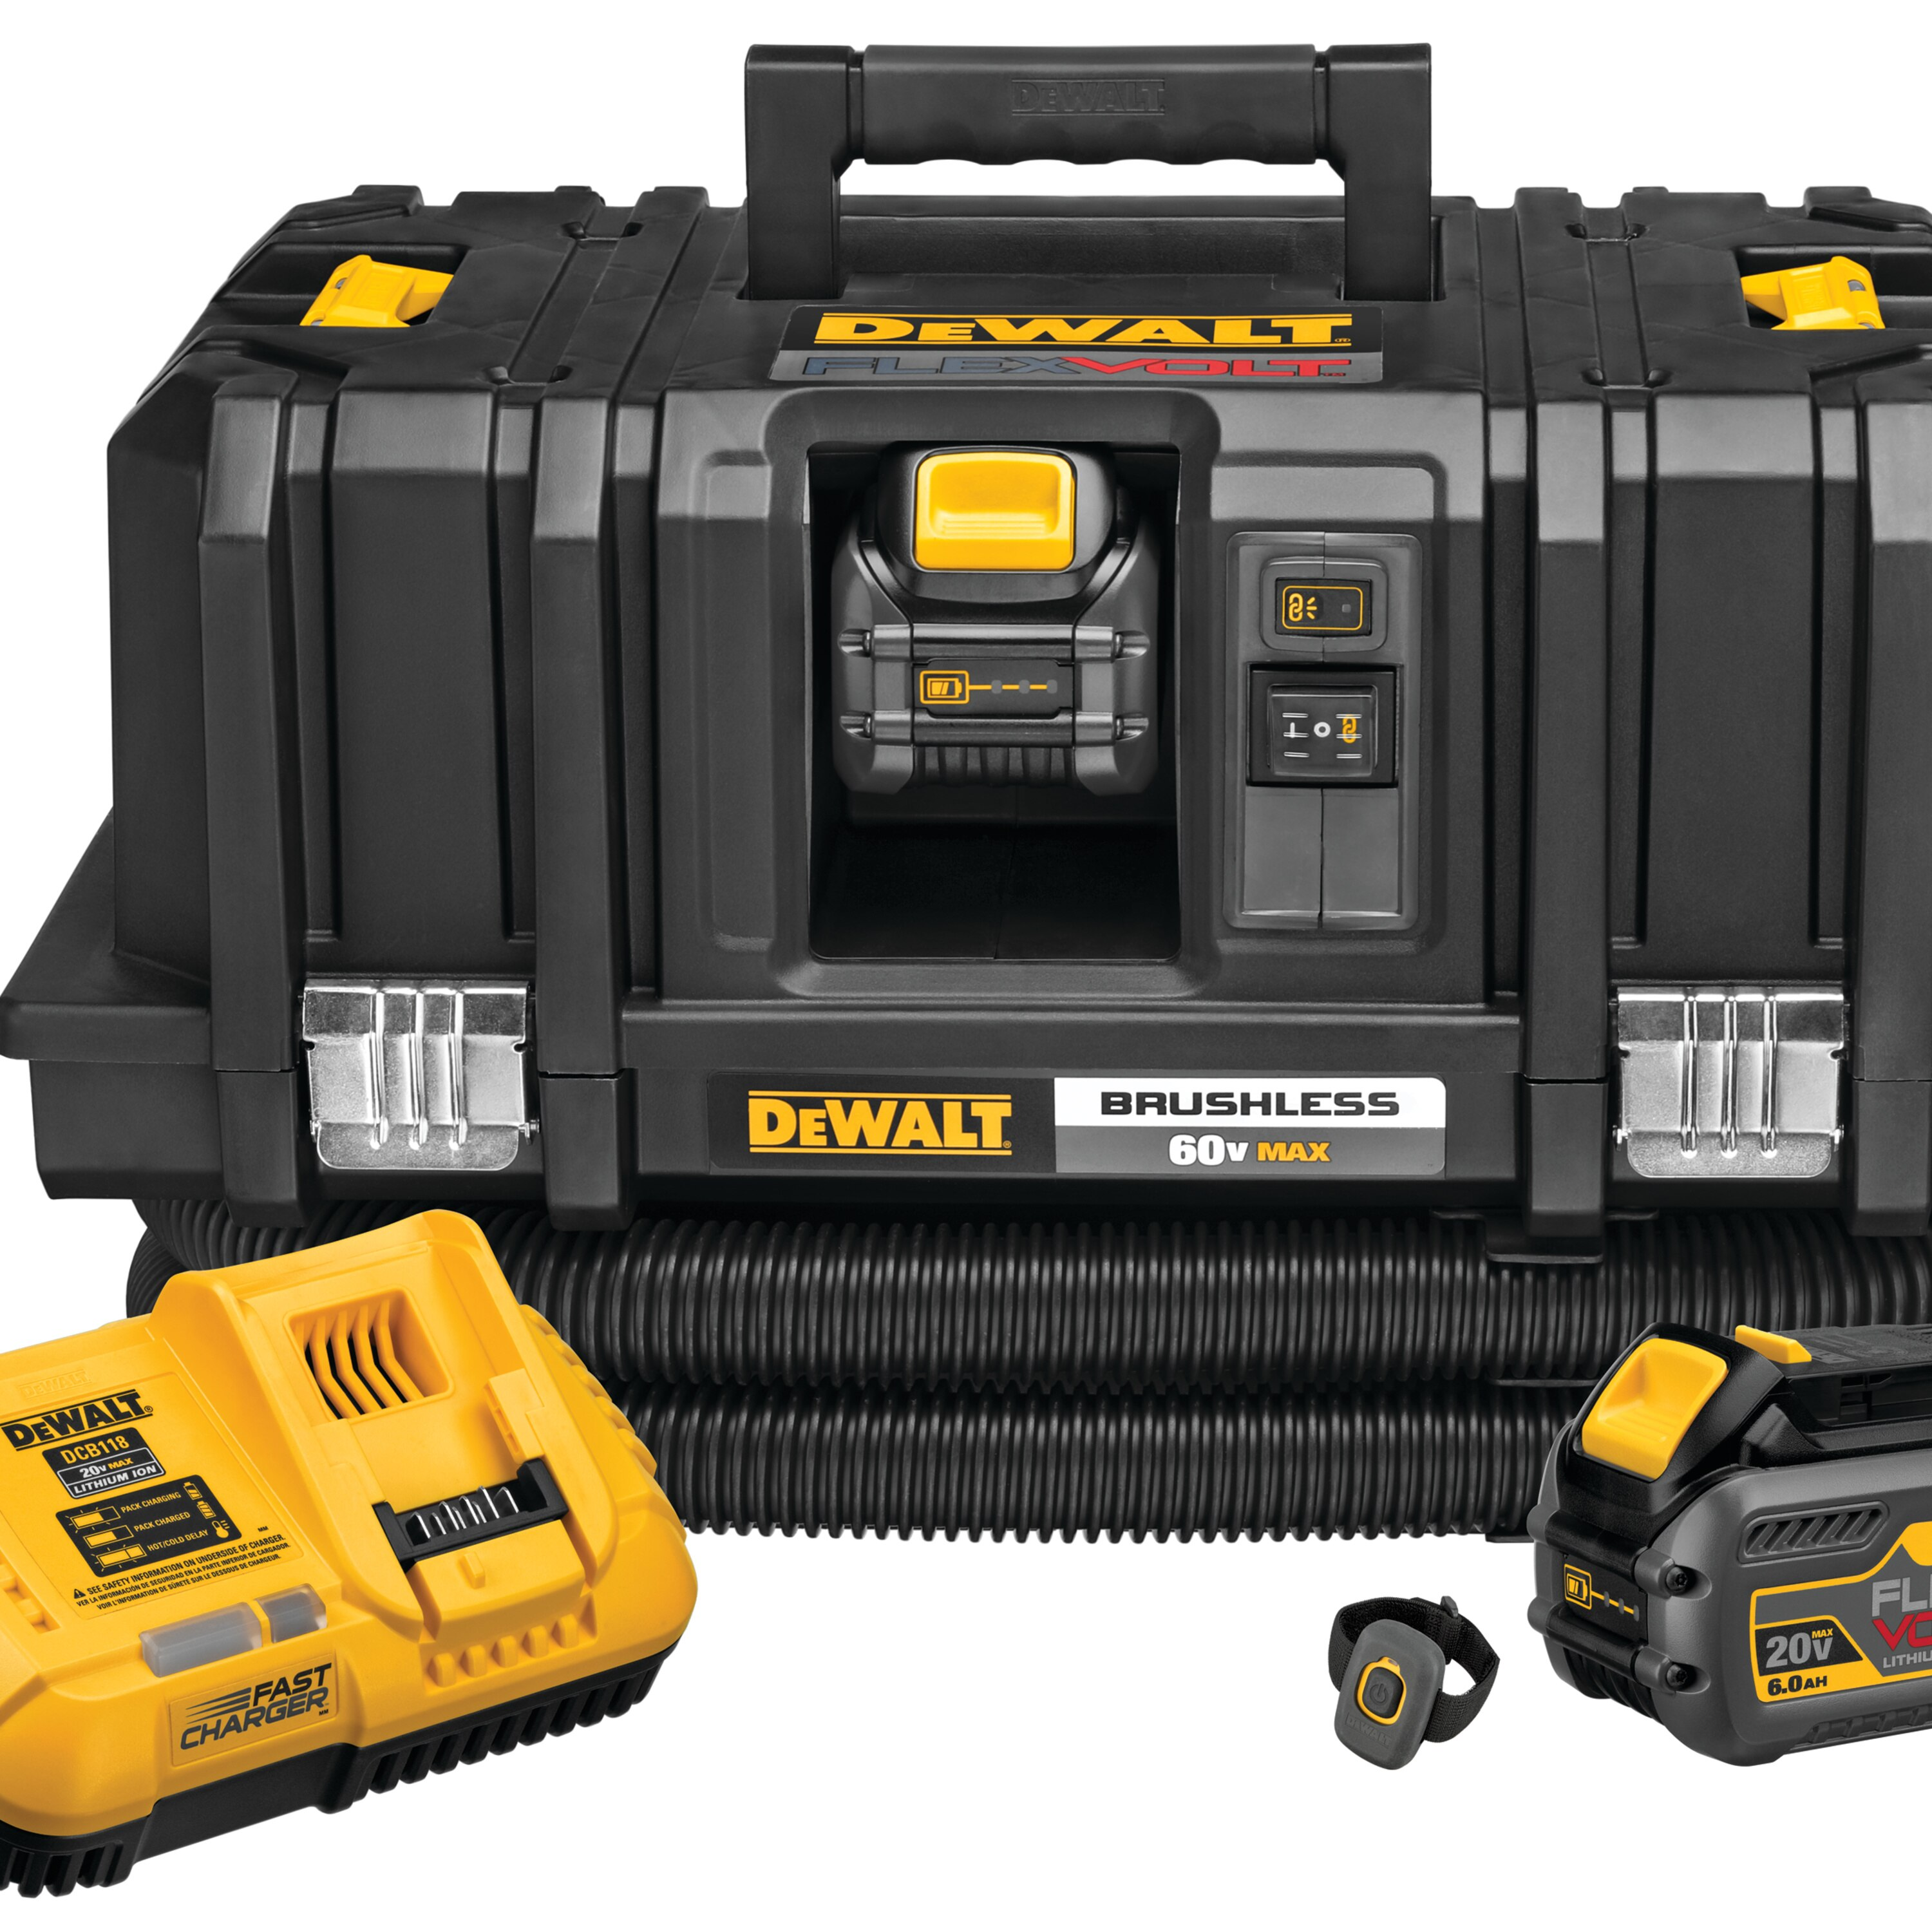 Dewalt Dust Extractor >> Flexvolt 60v Max Dust Extractor Kit